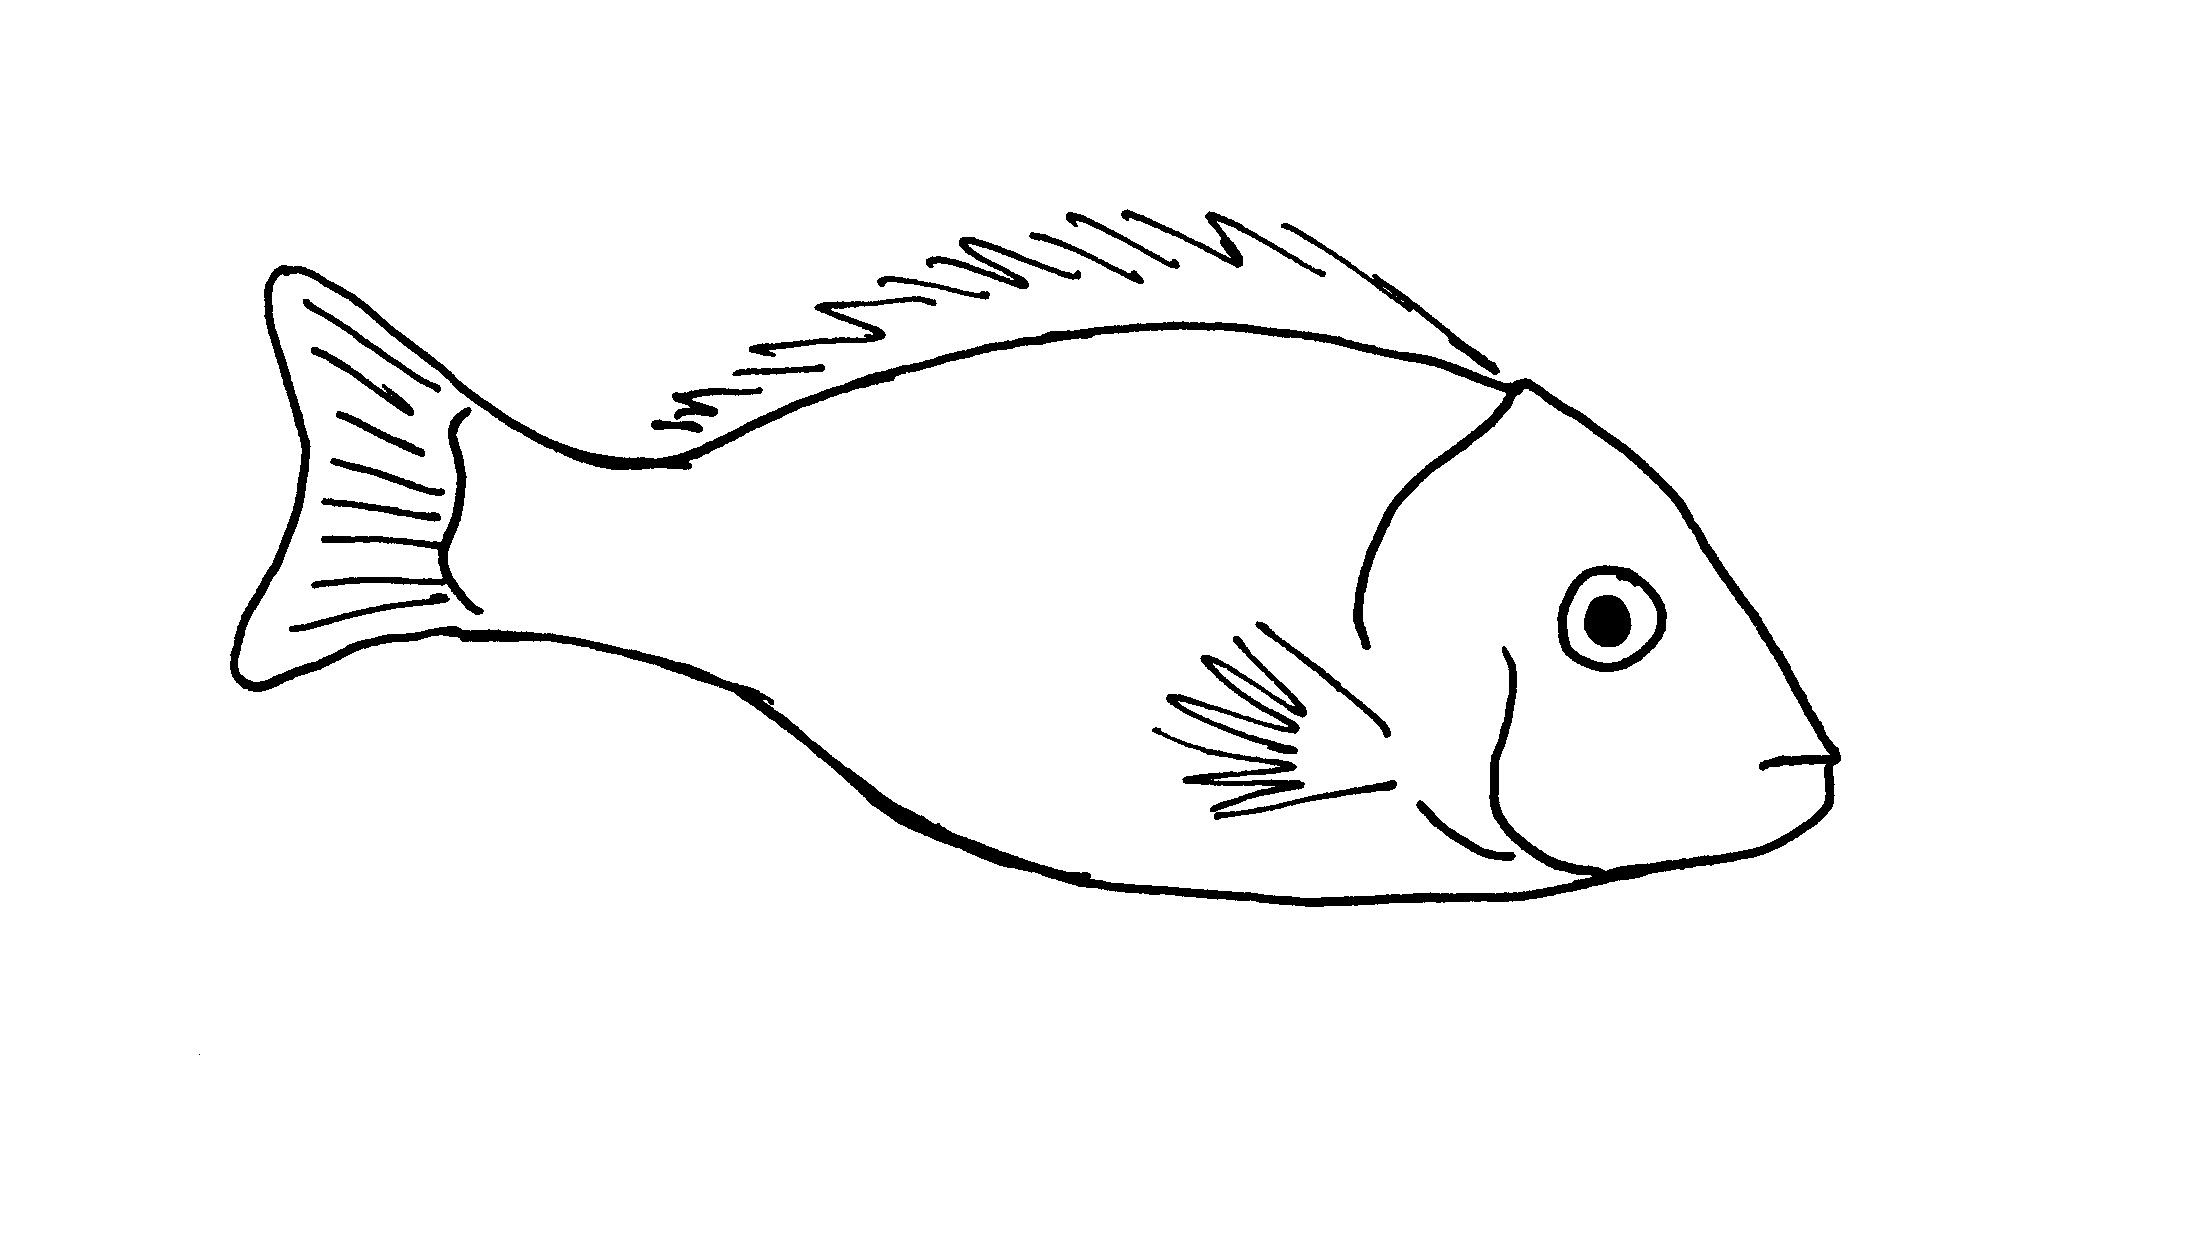 Line Drawing Of Fish : Simple fish line drawing